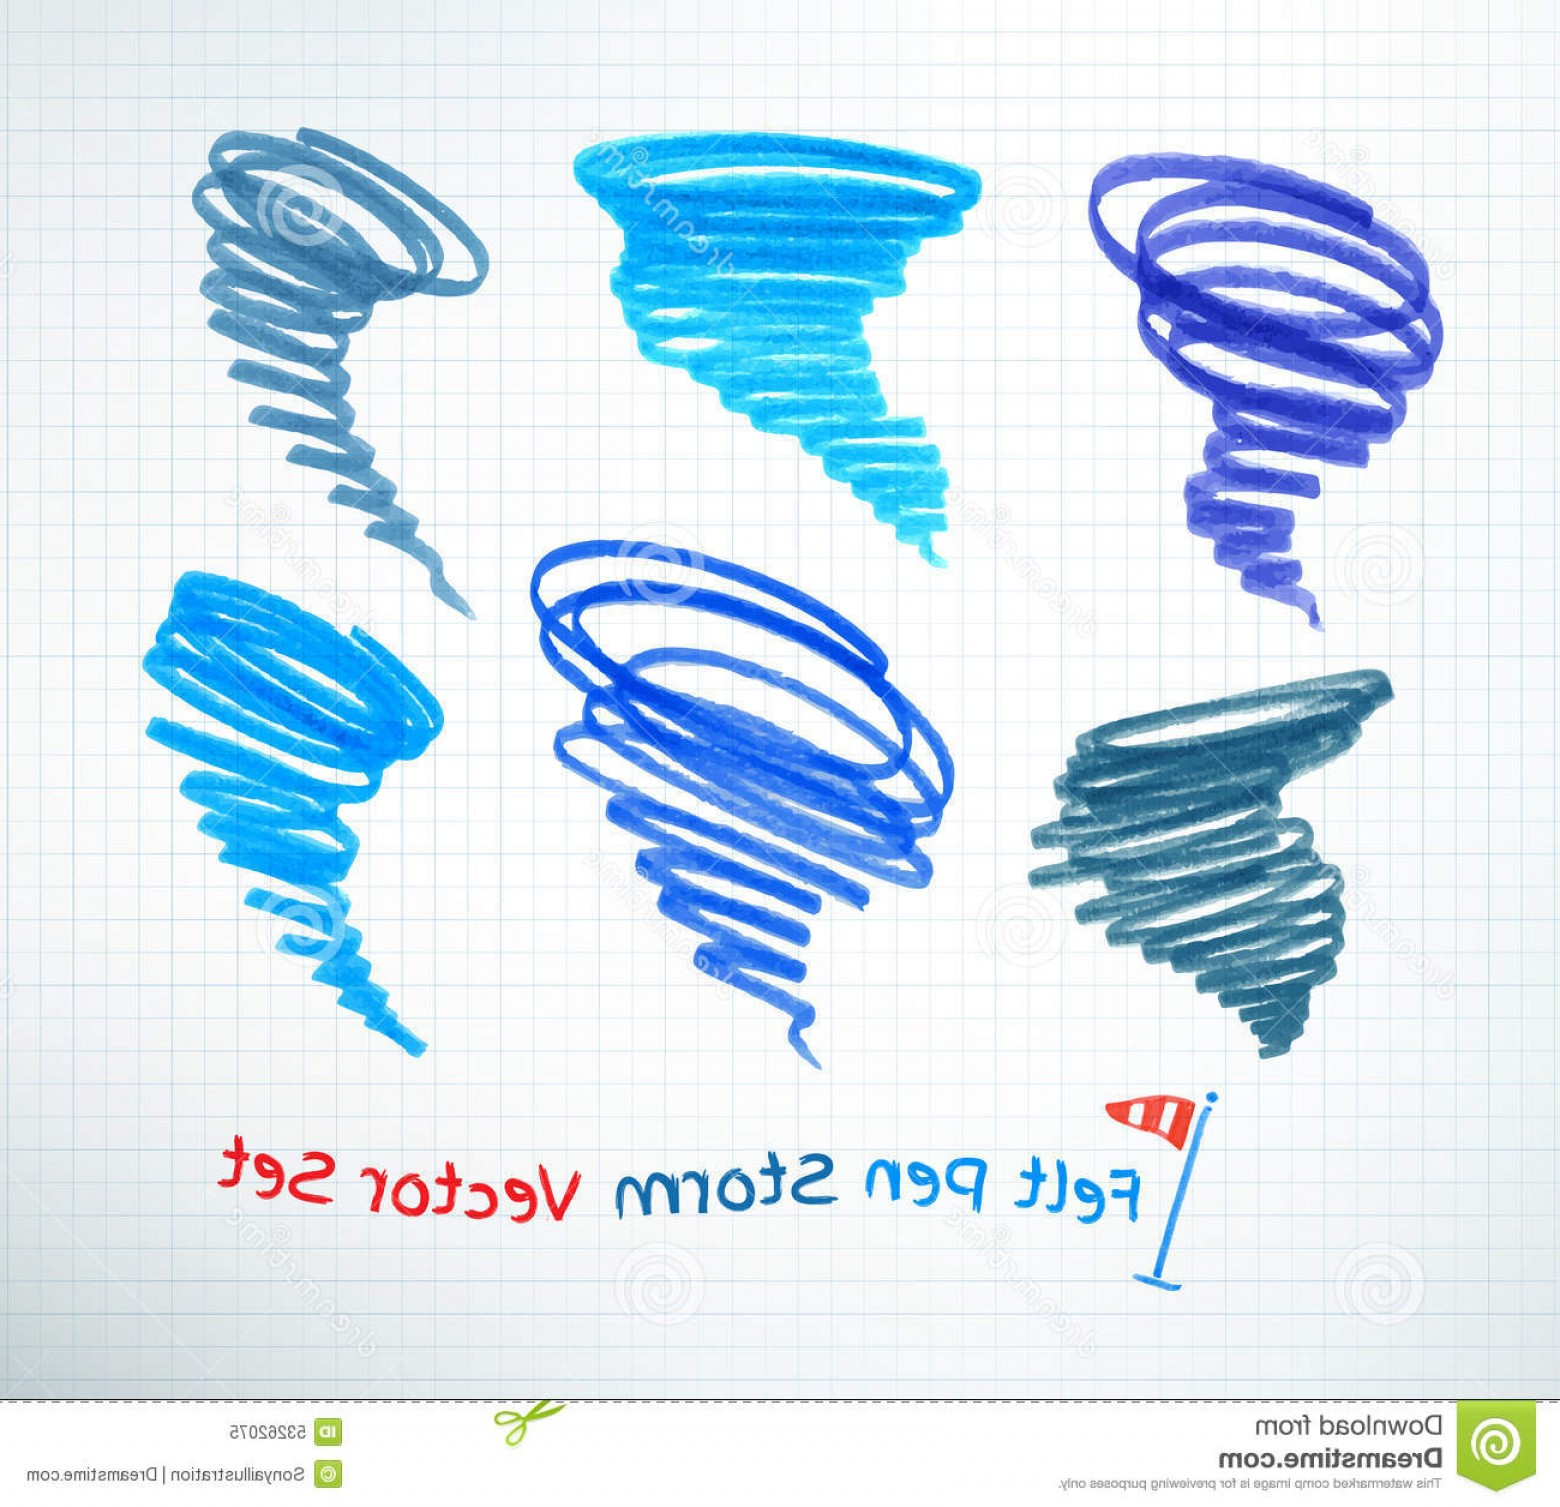 Hurricane Vector Art: Stock Illustration Hurricane Symbols Vector Set Hand Drawn Image